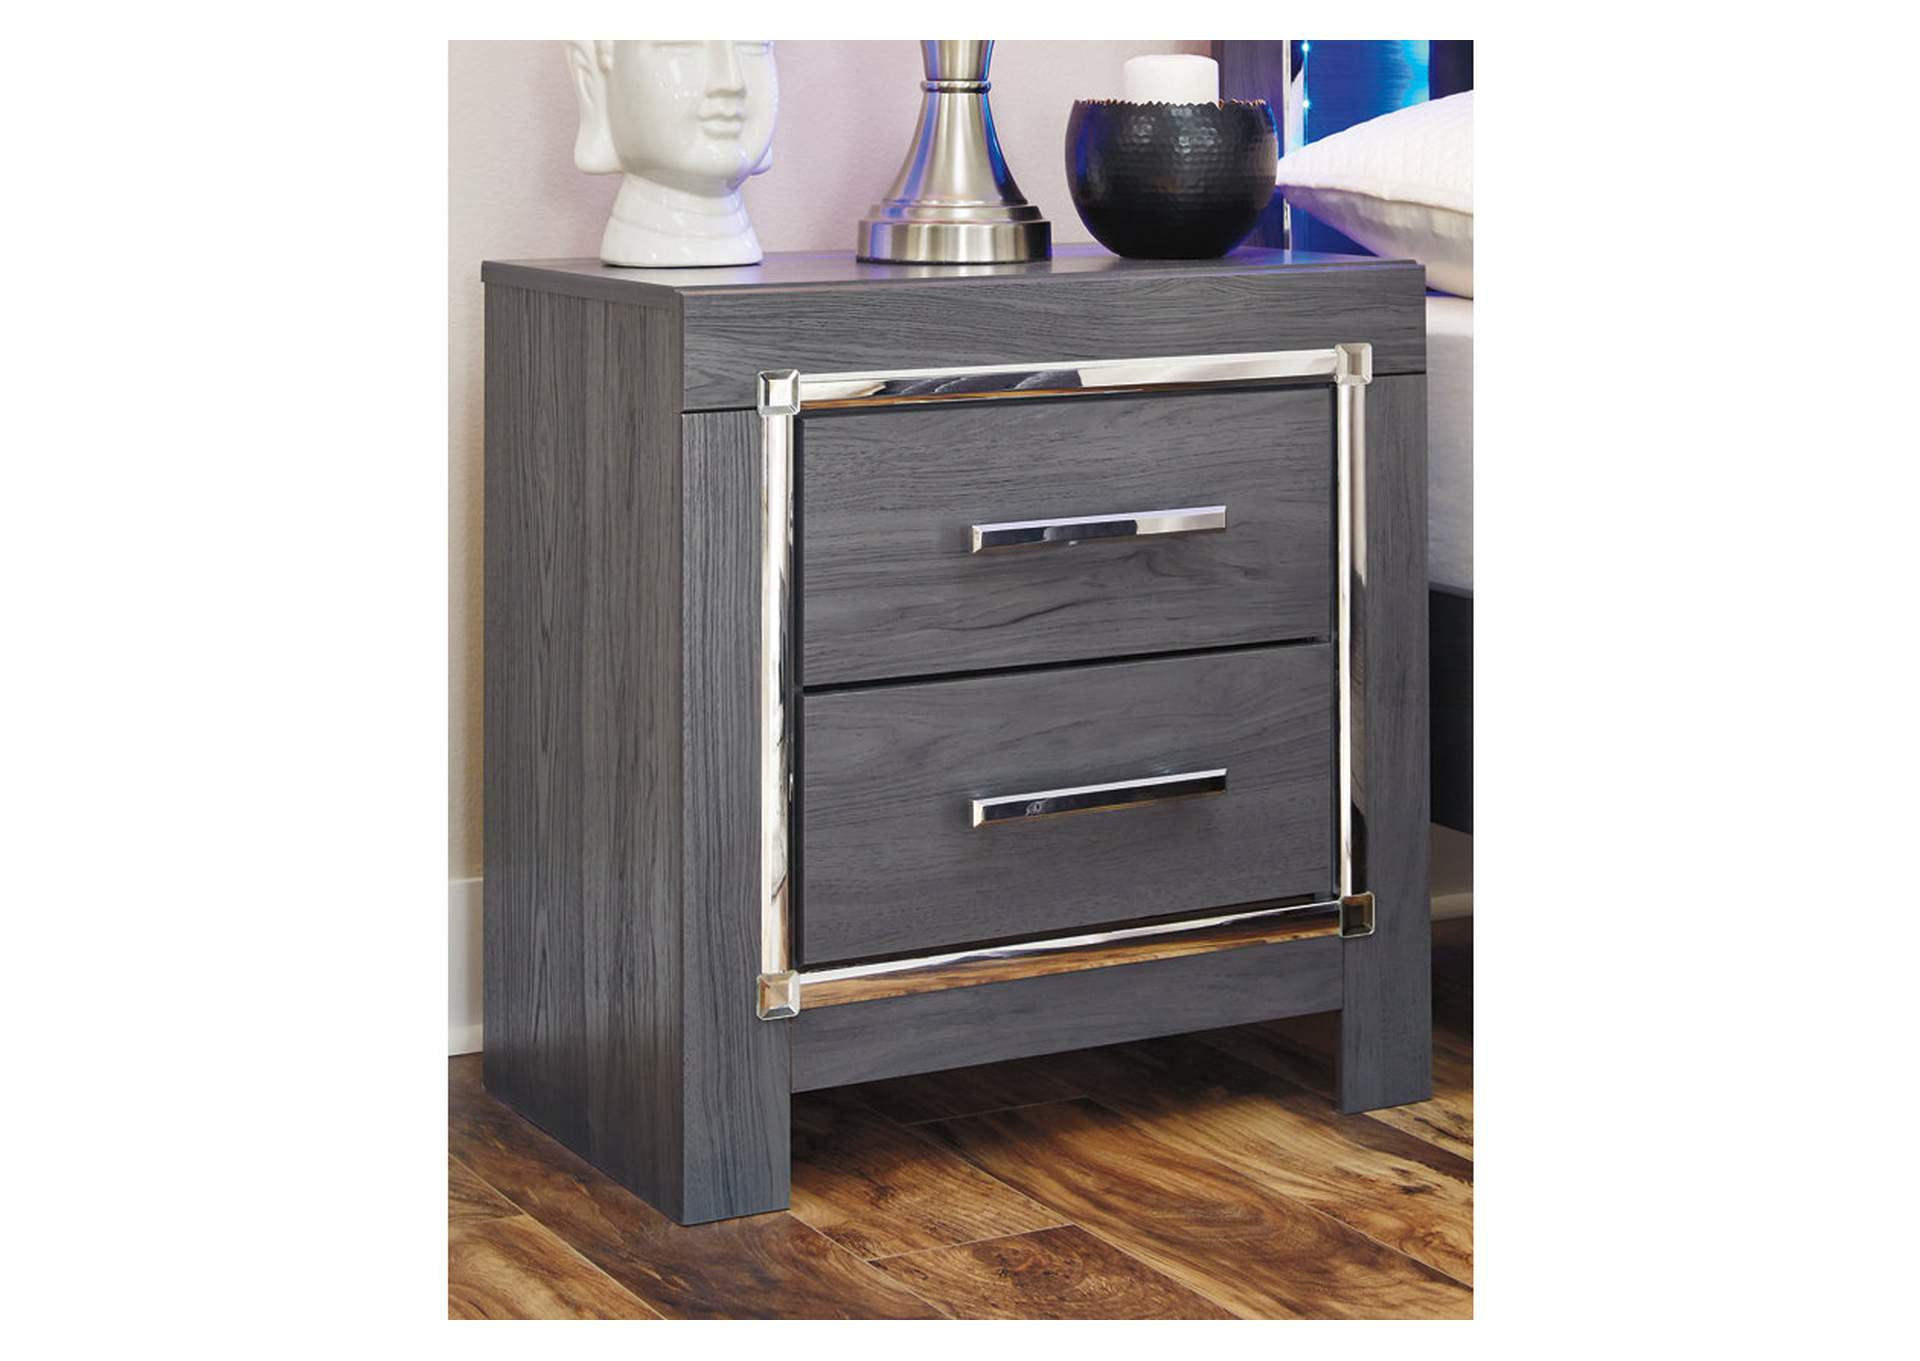 Lodanna Nightstand,Signature Design By Ashley